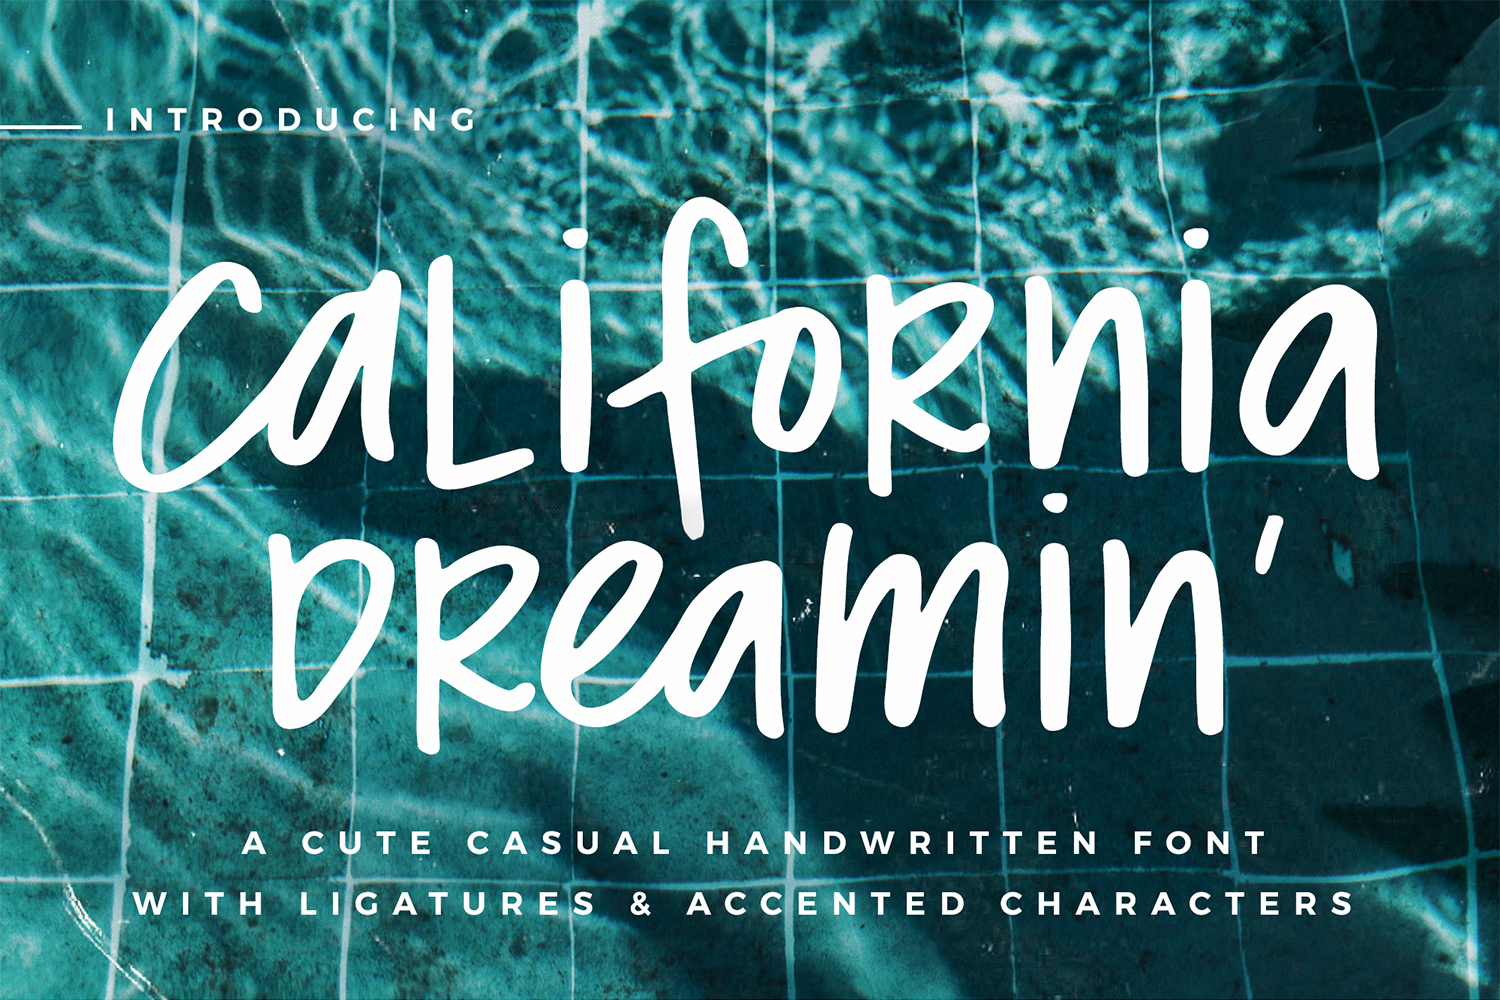 California Dreamin' Font example image 1